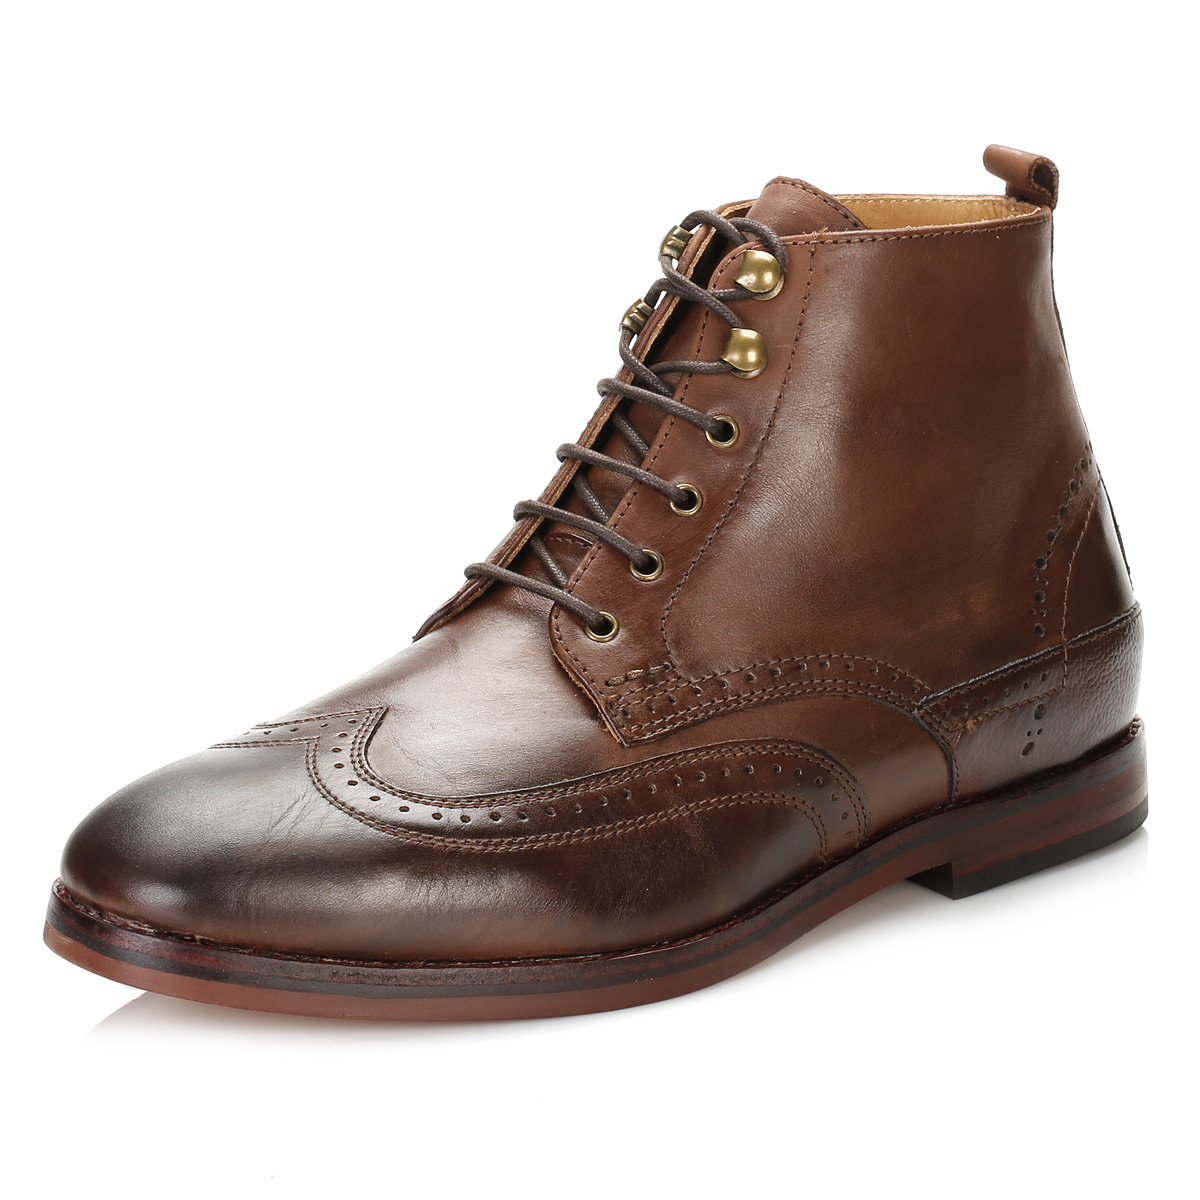 hudson mens brown penley brogue boots wingtip leather